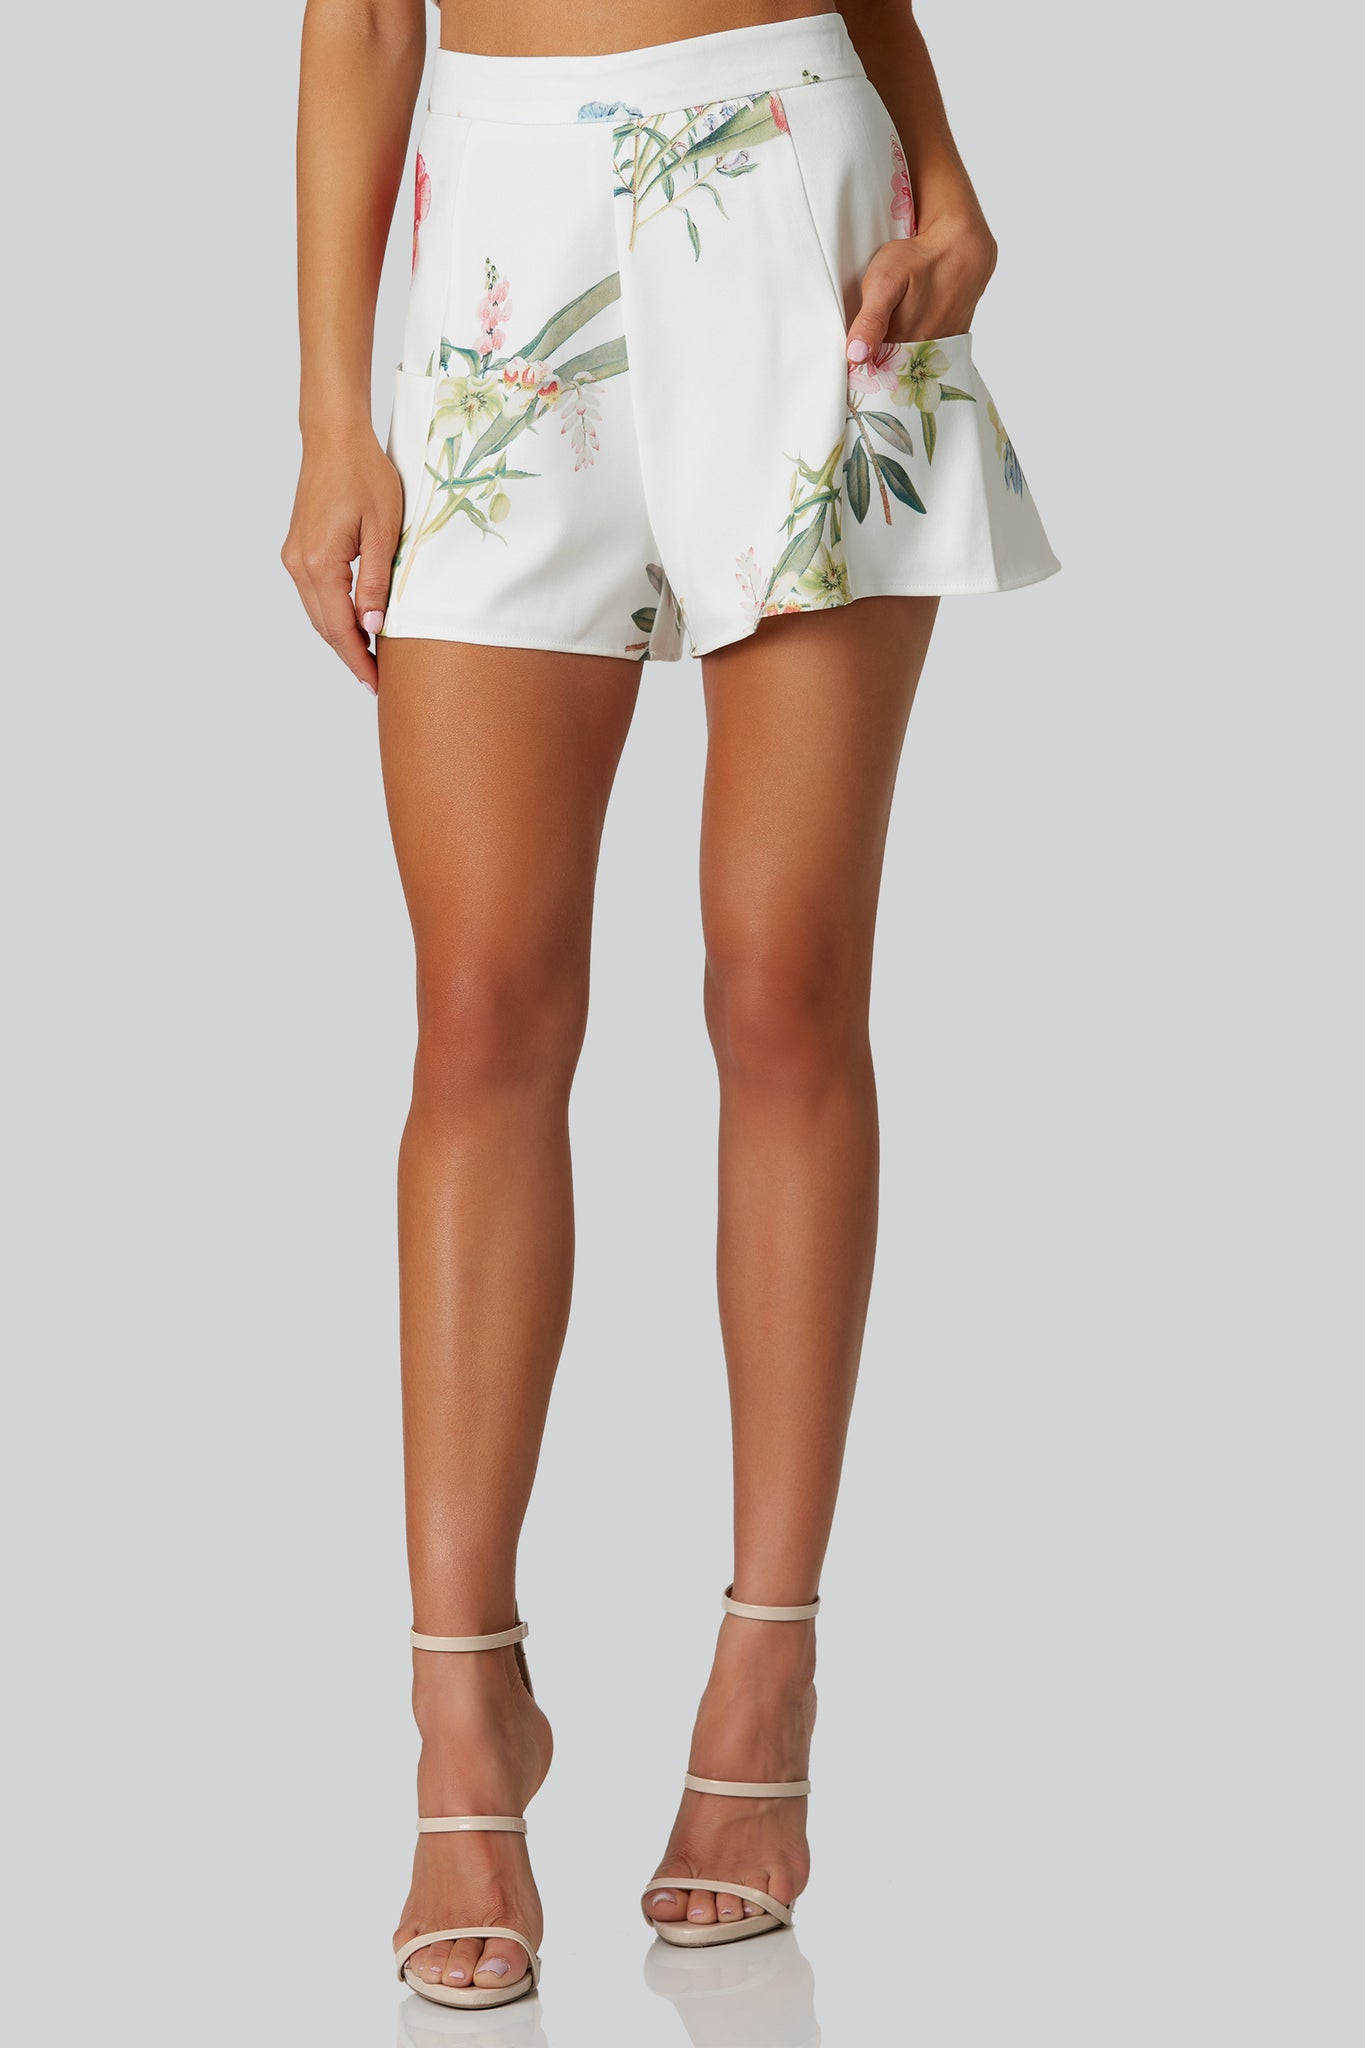 High rise printed shorts with floral patterns throughout. Fully lined with side pockets and back zip closure.